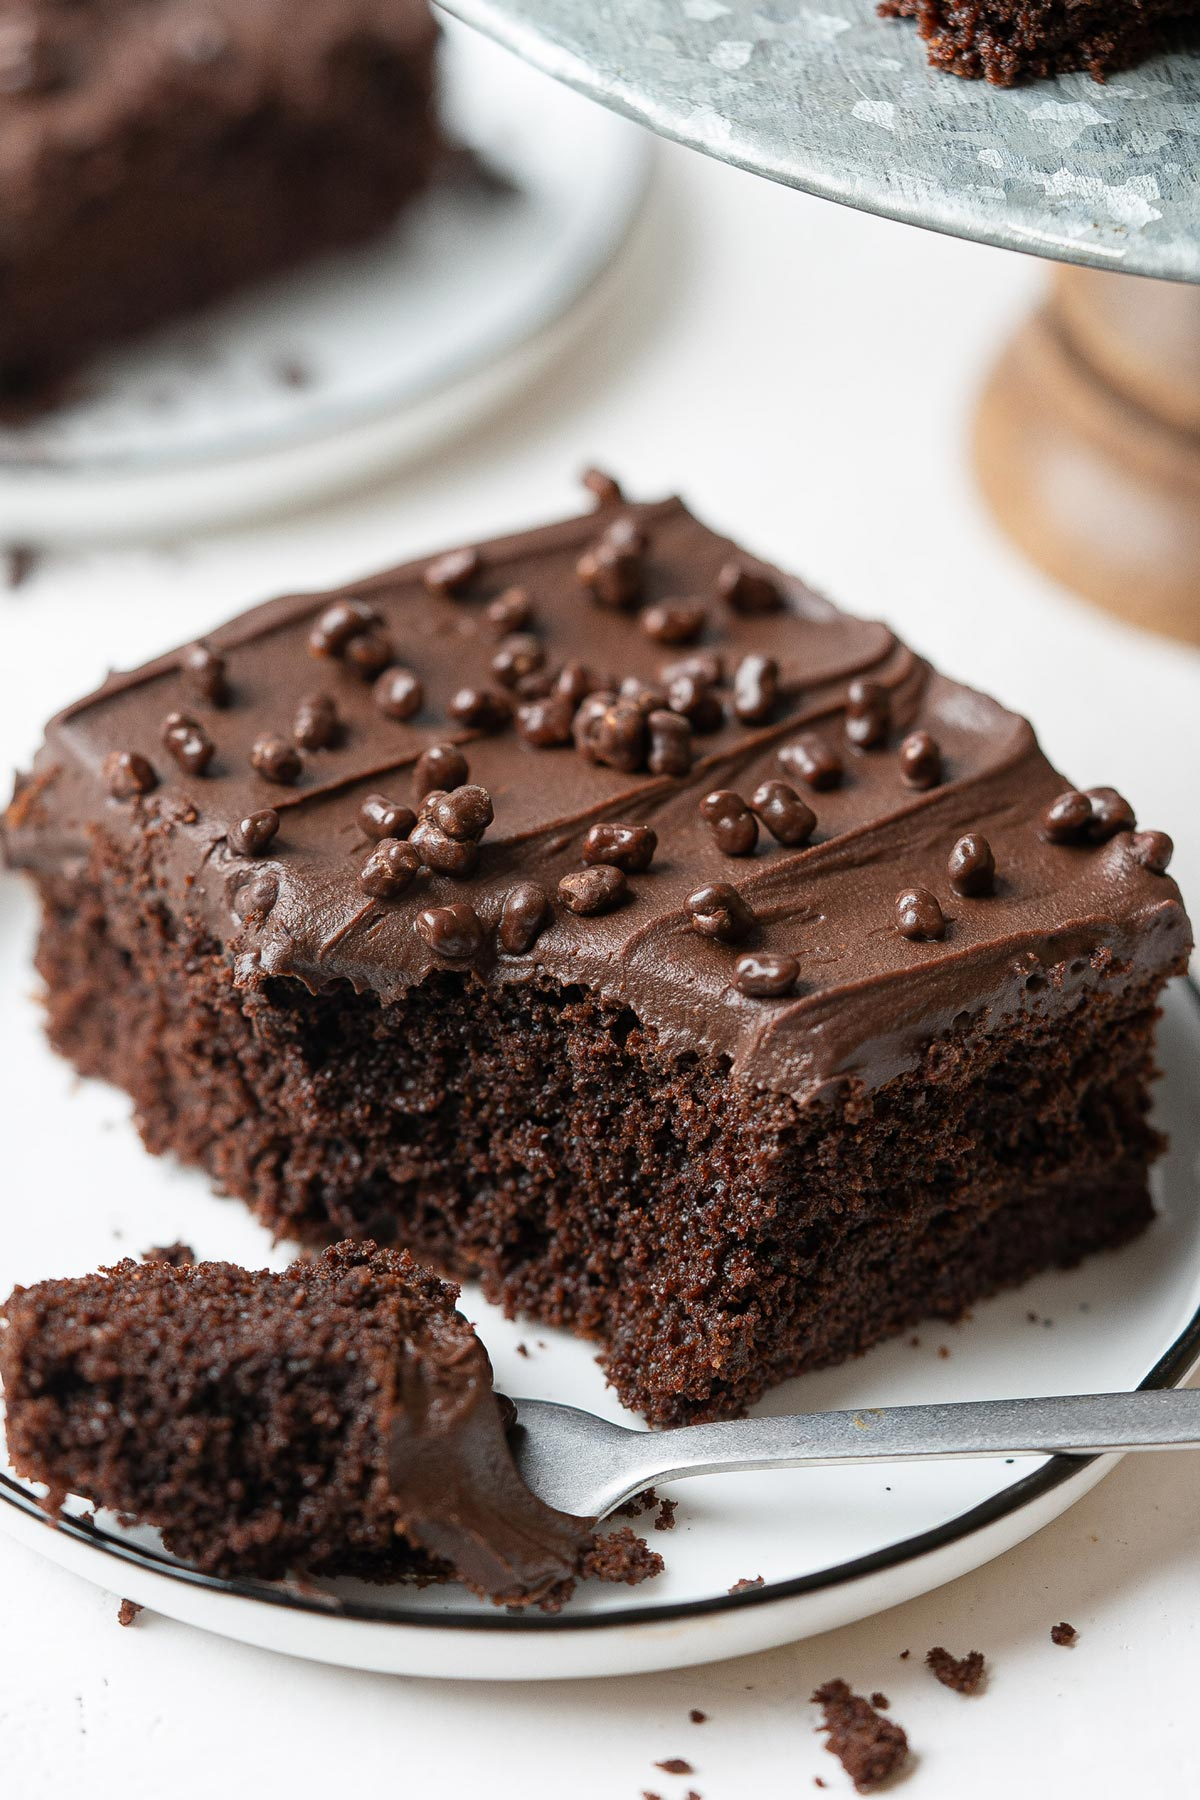 A piece of healthy chocolate sheet cake eaten in a plate